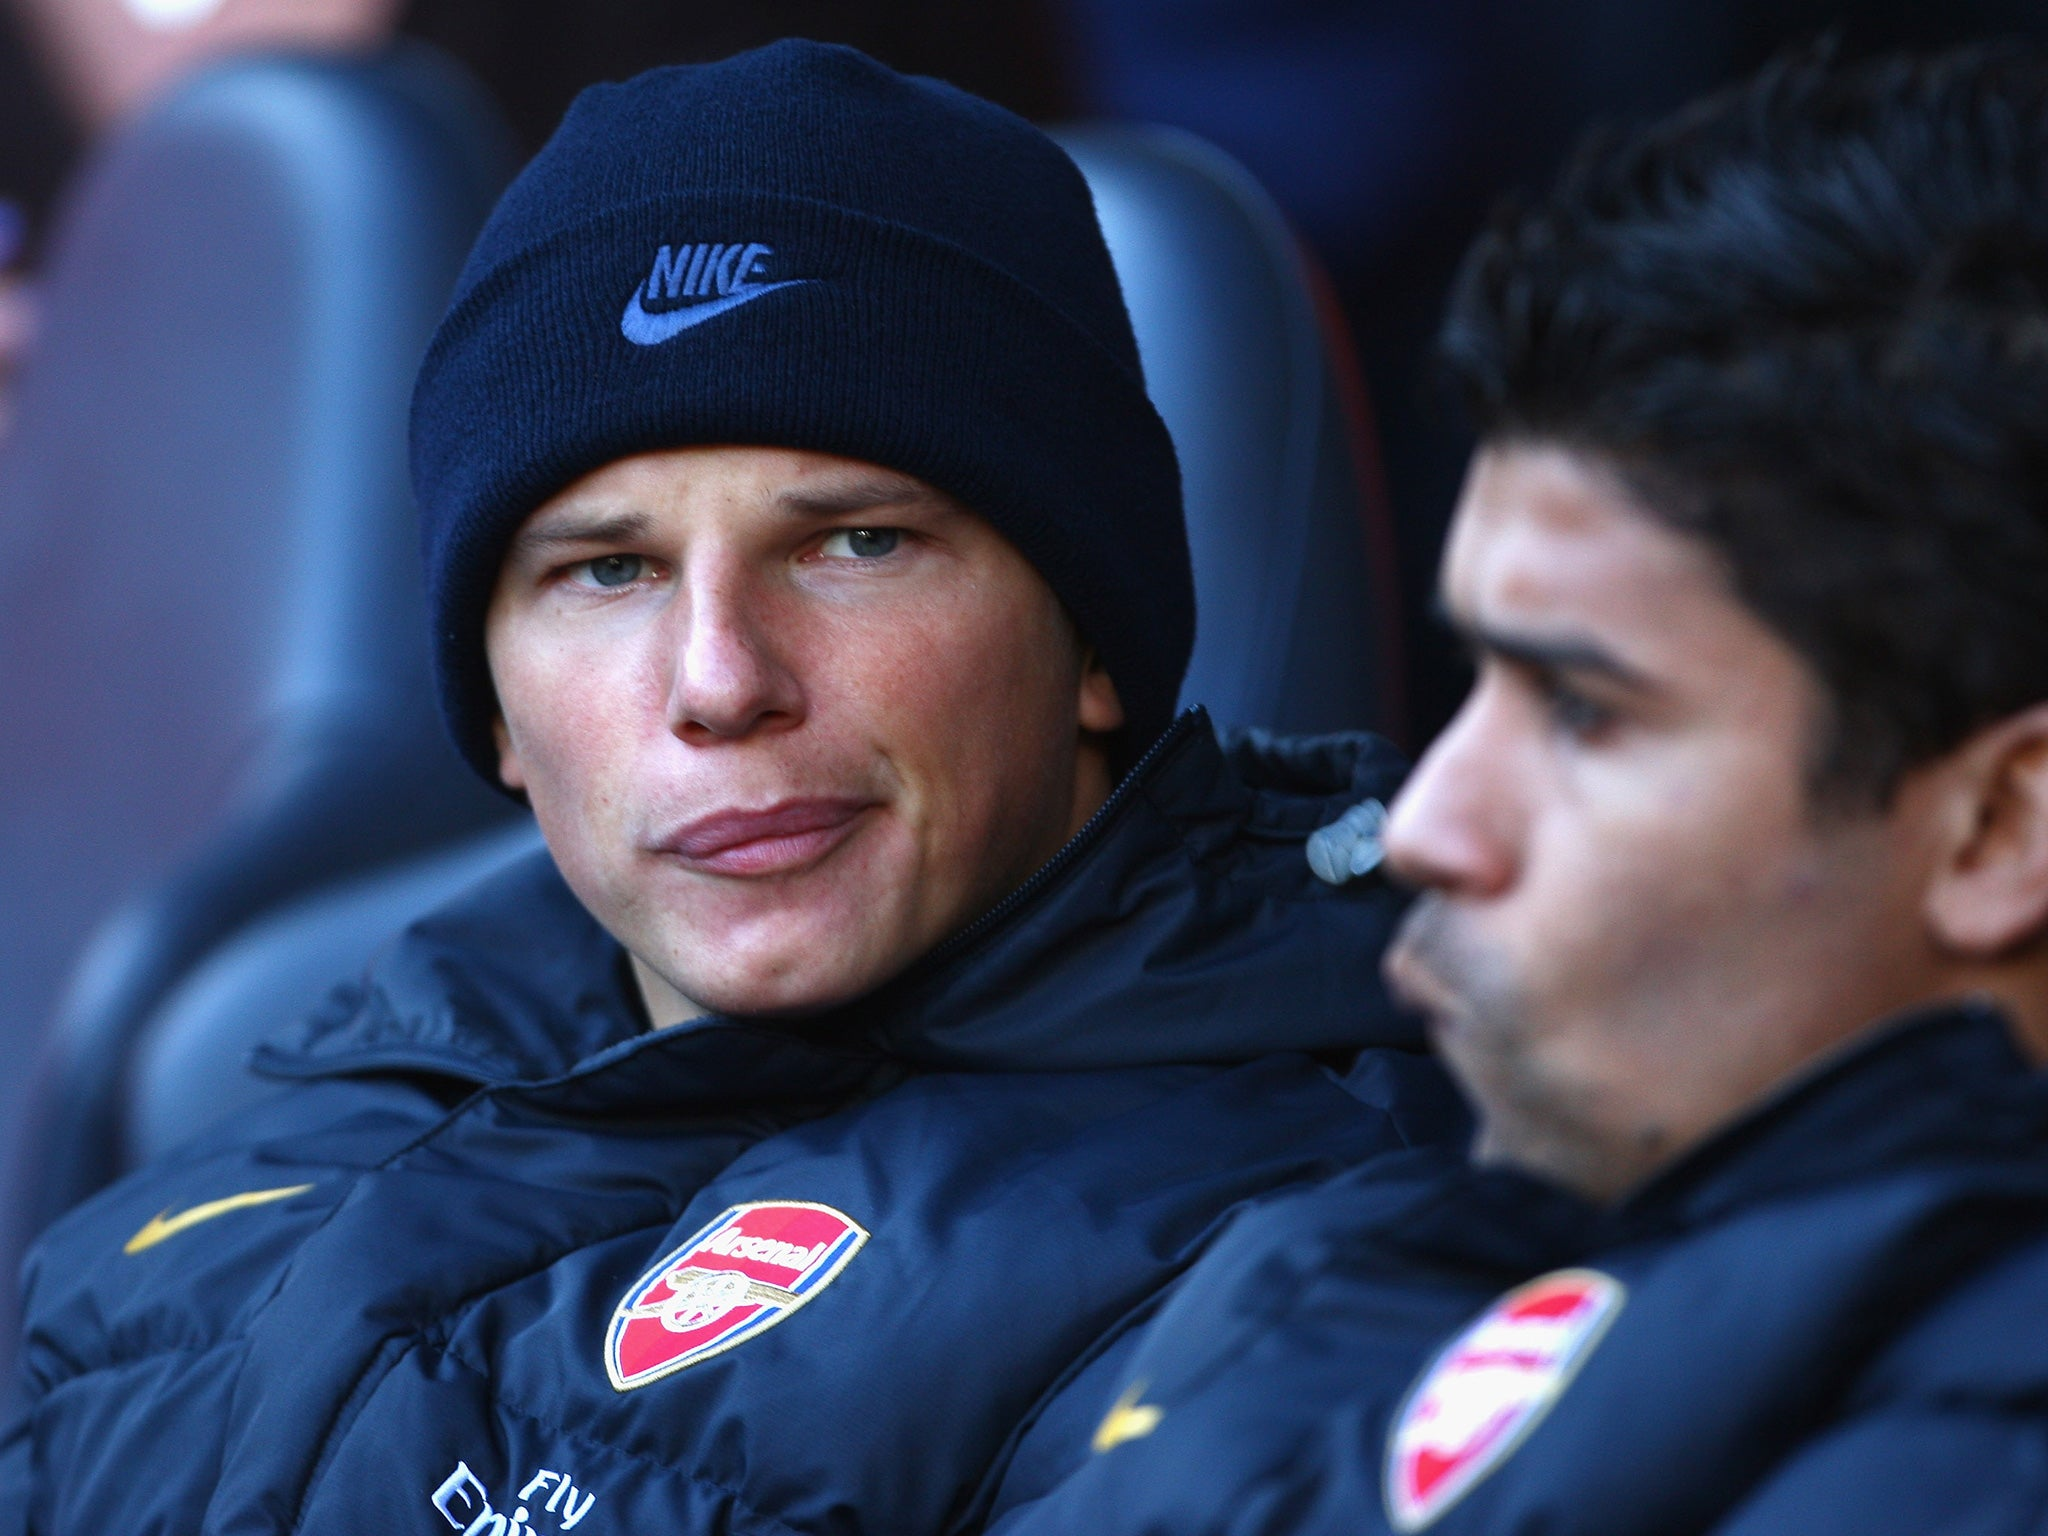 Andrei Arshavin spoke about the reasons for the break with his second wife 06.11.2017 38